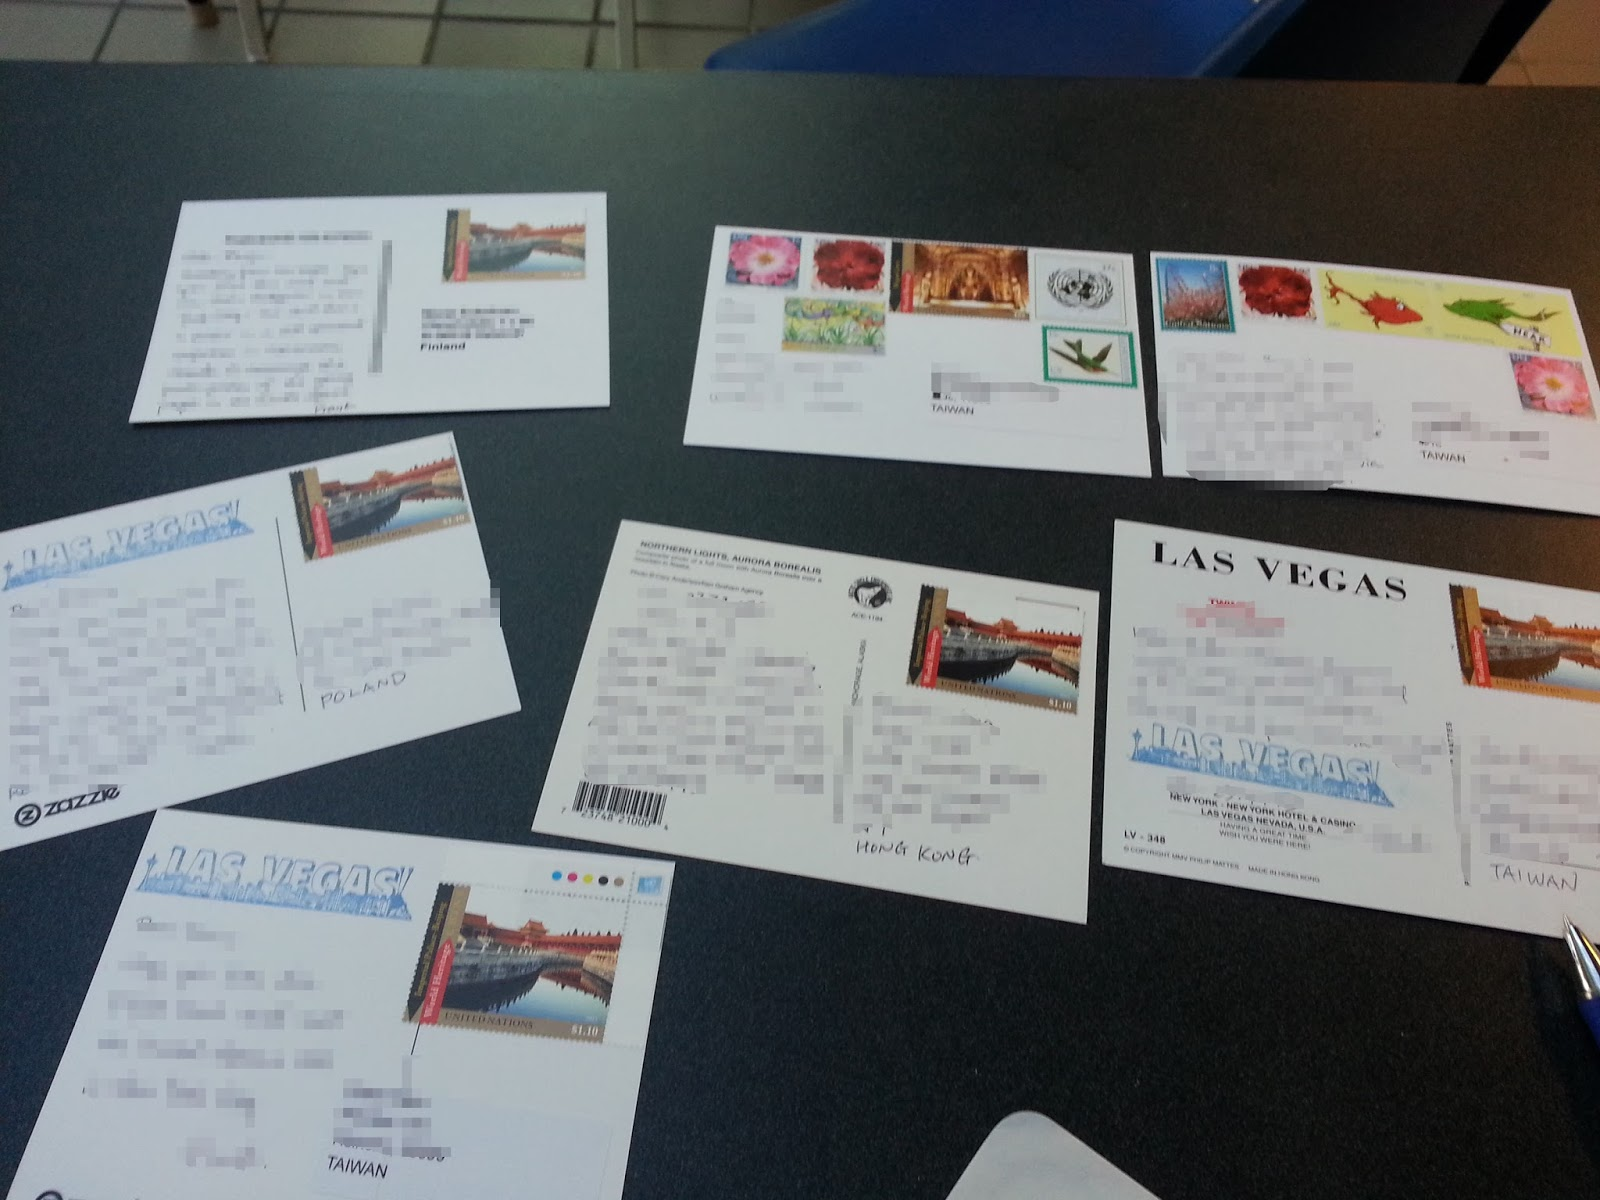 The Postcard Was Put Into An Envelop Along With Six Other Postcards All Affixed United Nations Stamps To Be Sent Headquarter